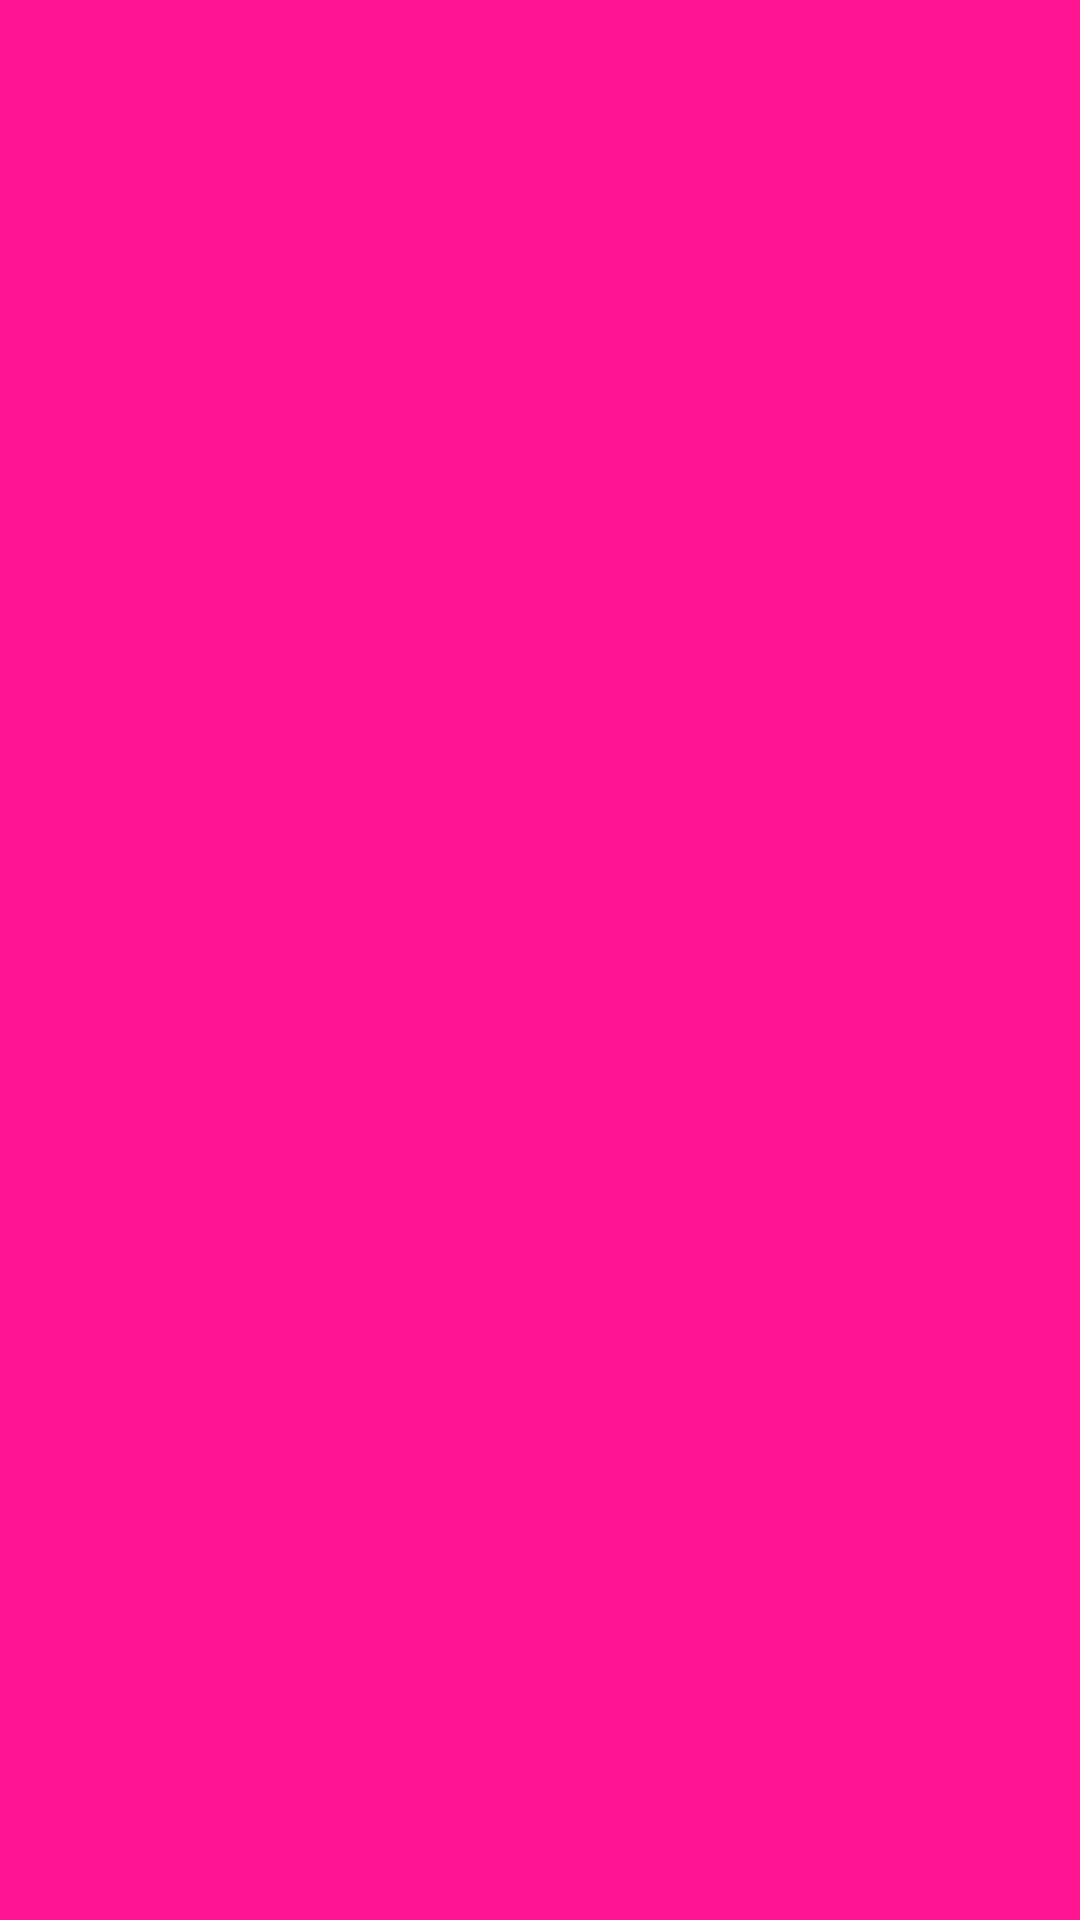 1080x1920 Fluorescent Pink Solid Color Background